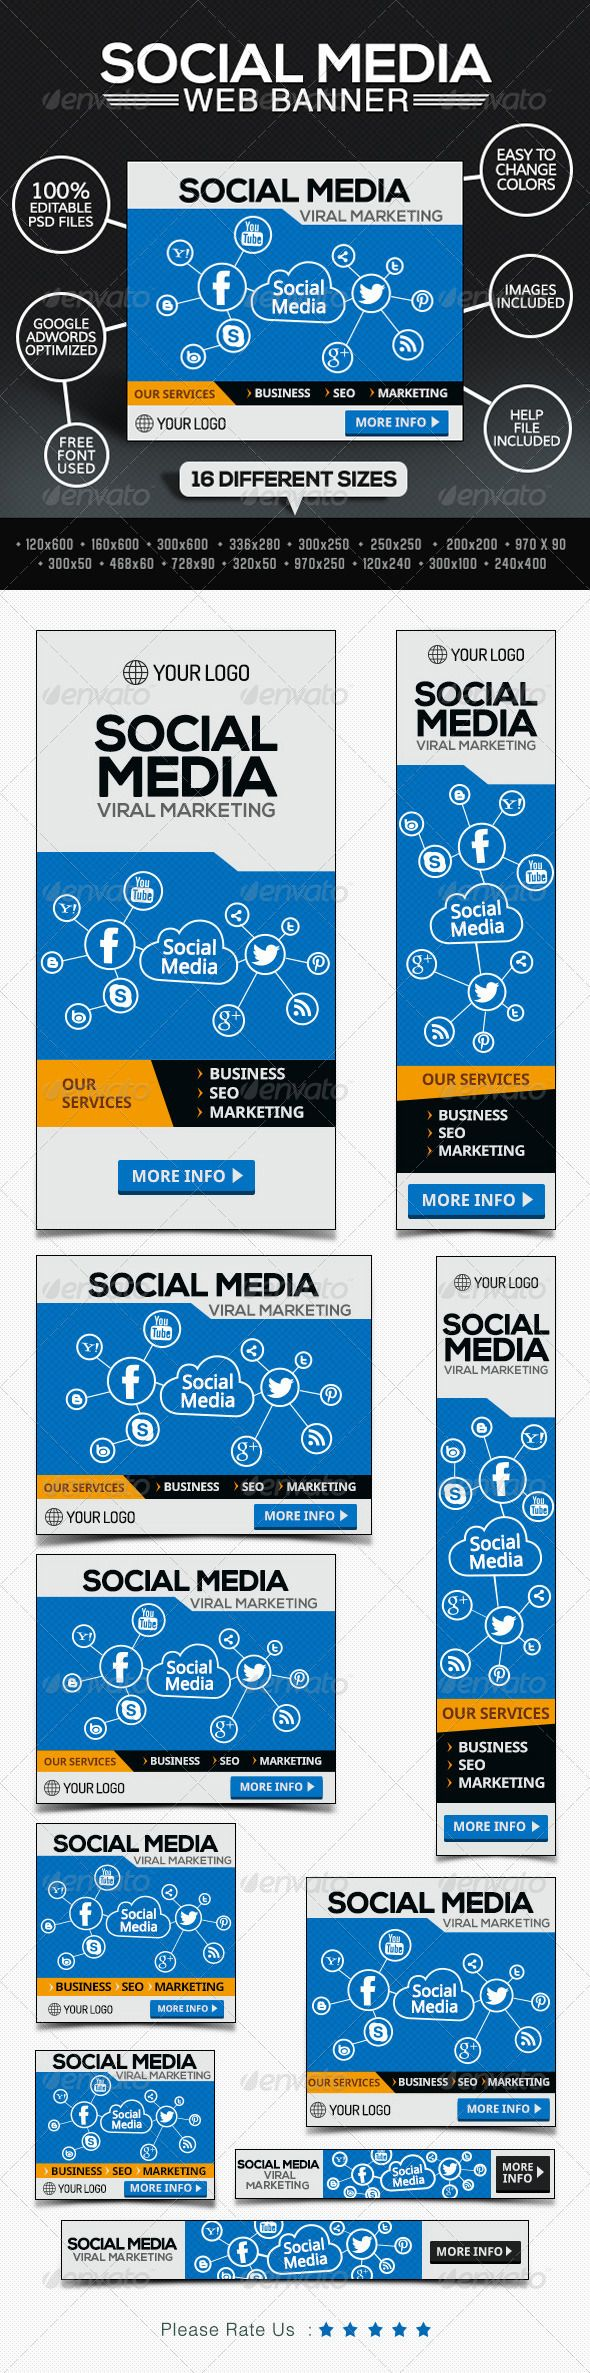 Social Media Marketing Company Banners Template PSD   Buy and Download: http://graphicriver.net/item/social-media-marketing-company-banners/7801162?WT.ac=category_thumb&WT.z_author=BannerDesignCo&ref=ksioks